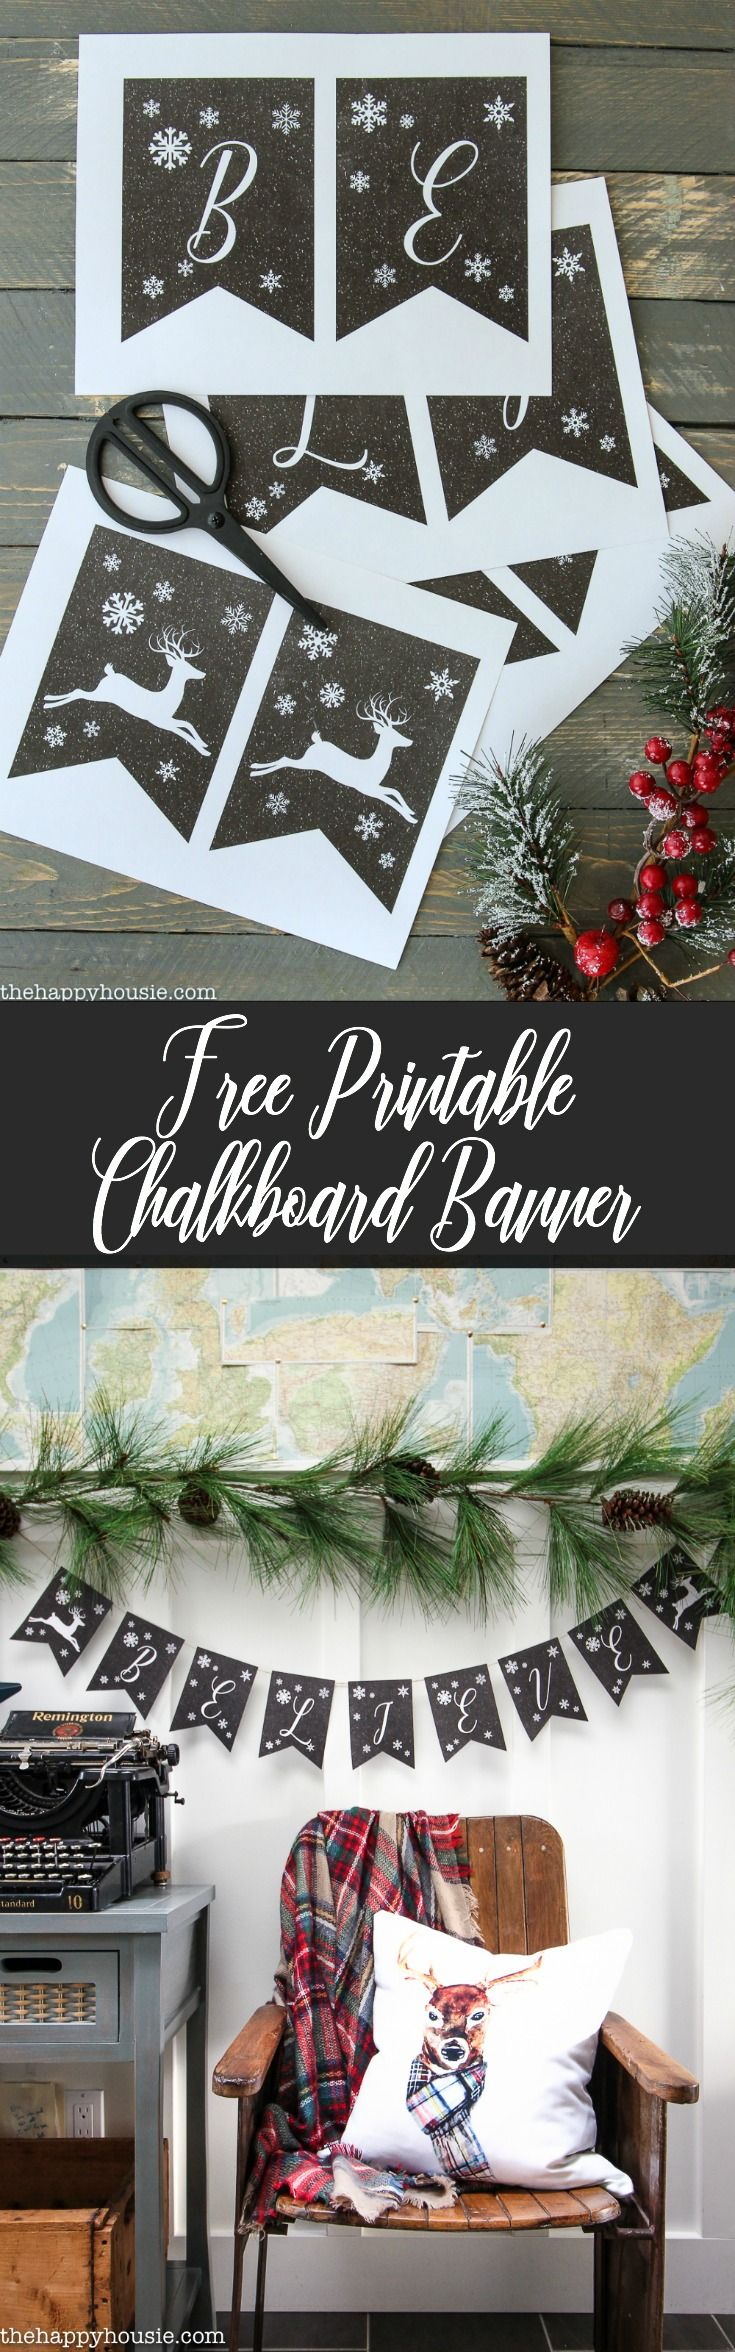 free bridal shower printable banner%0A Faux Chalkboard Free Printable Christmas Banner